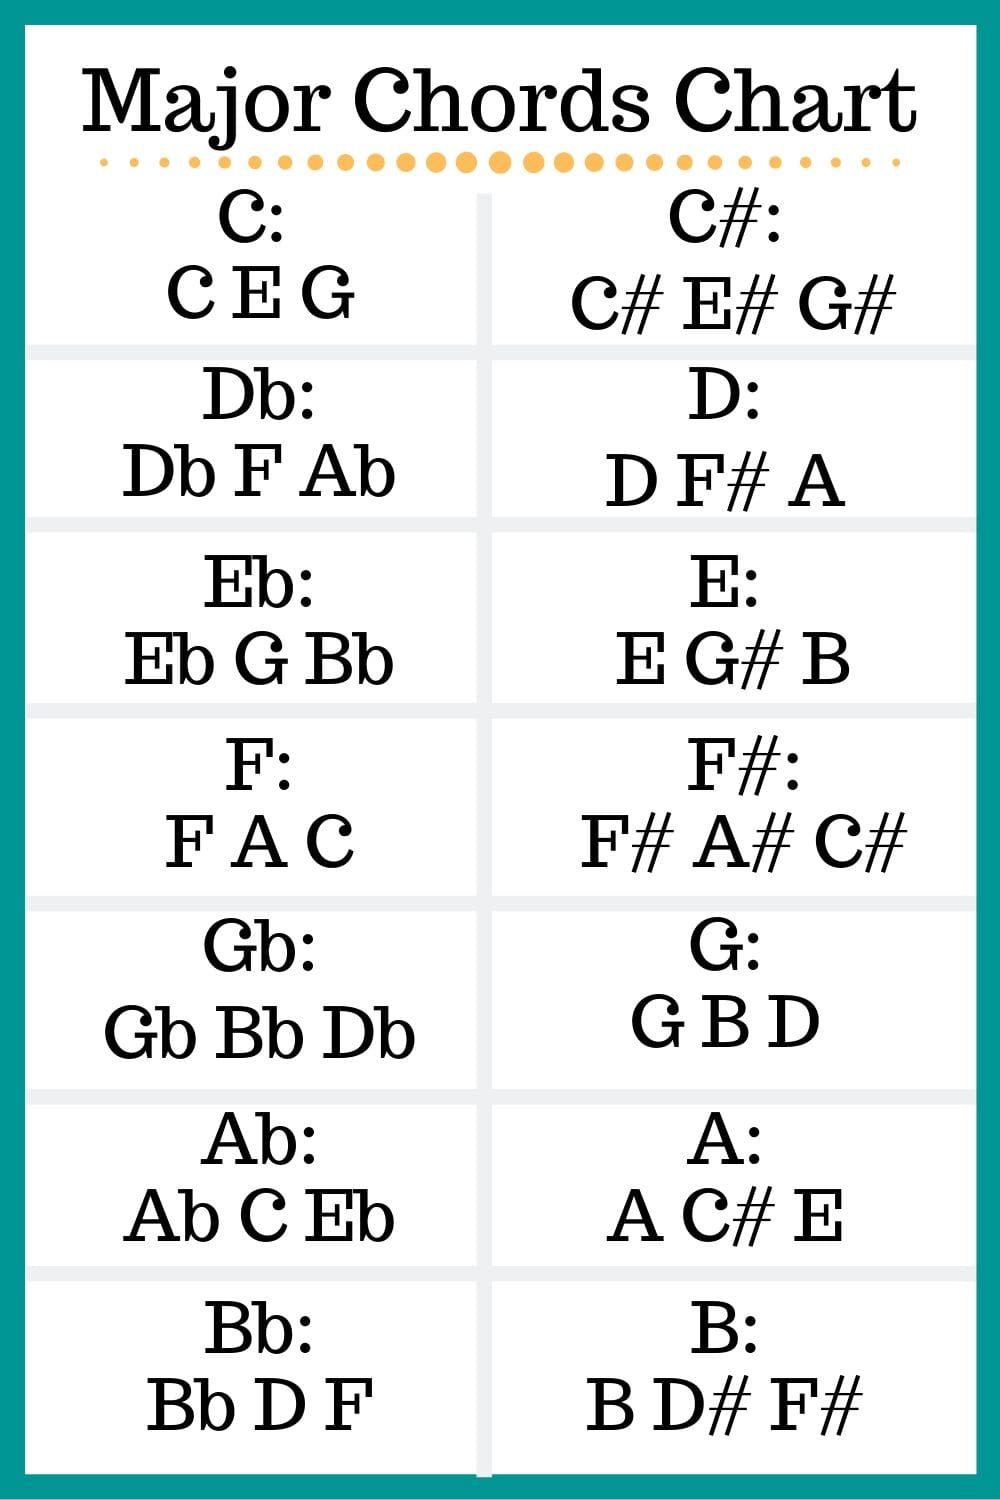 Chart of Major Chords